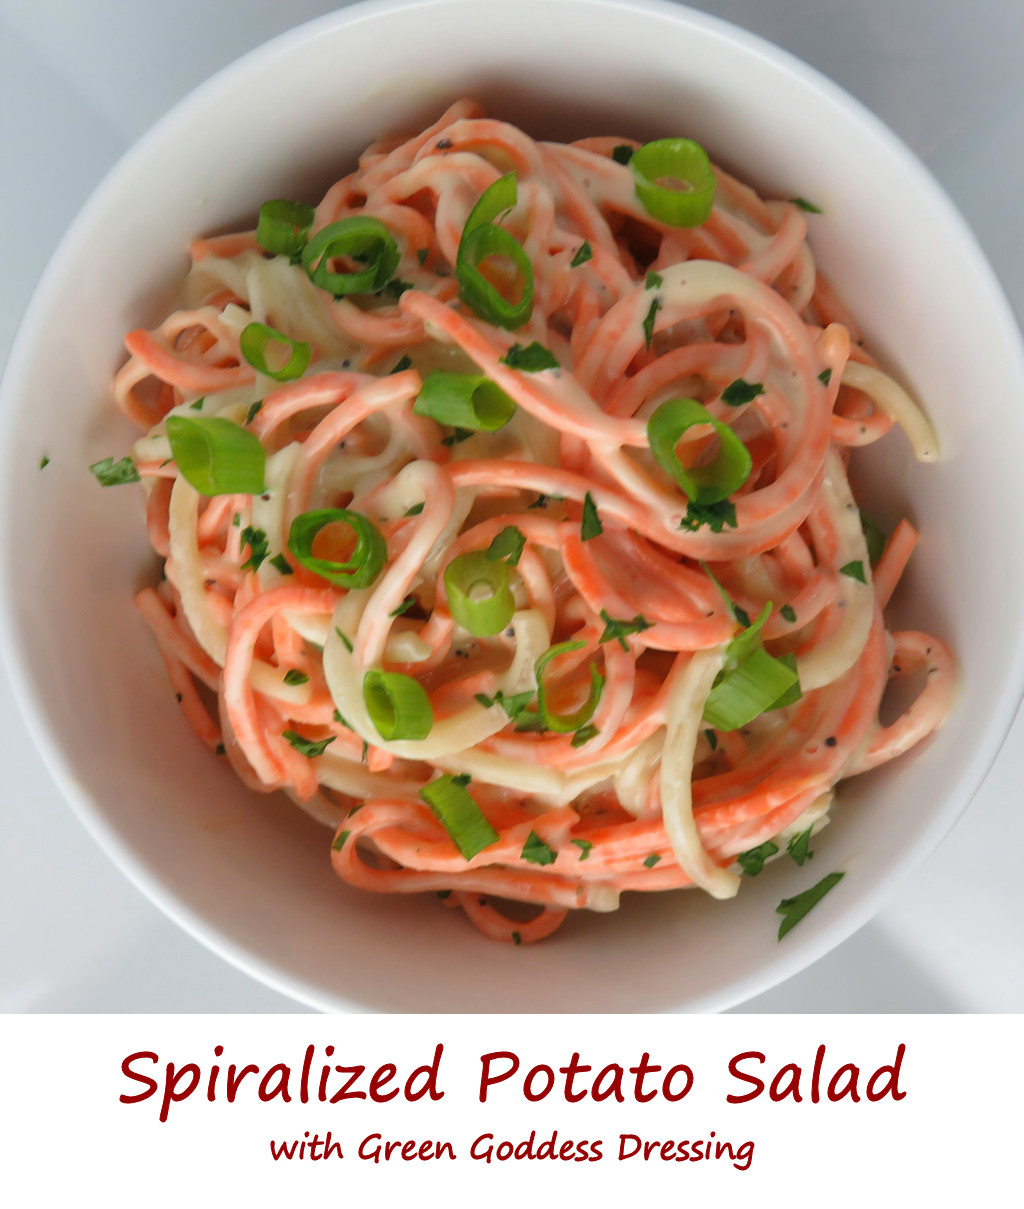 Spiralized Potato Salad with Green Goddess Dressing